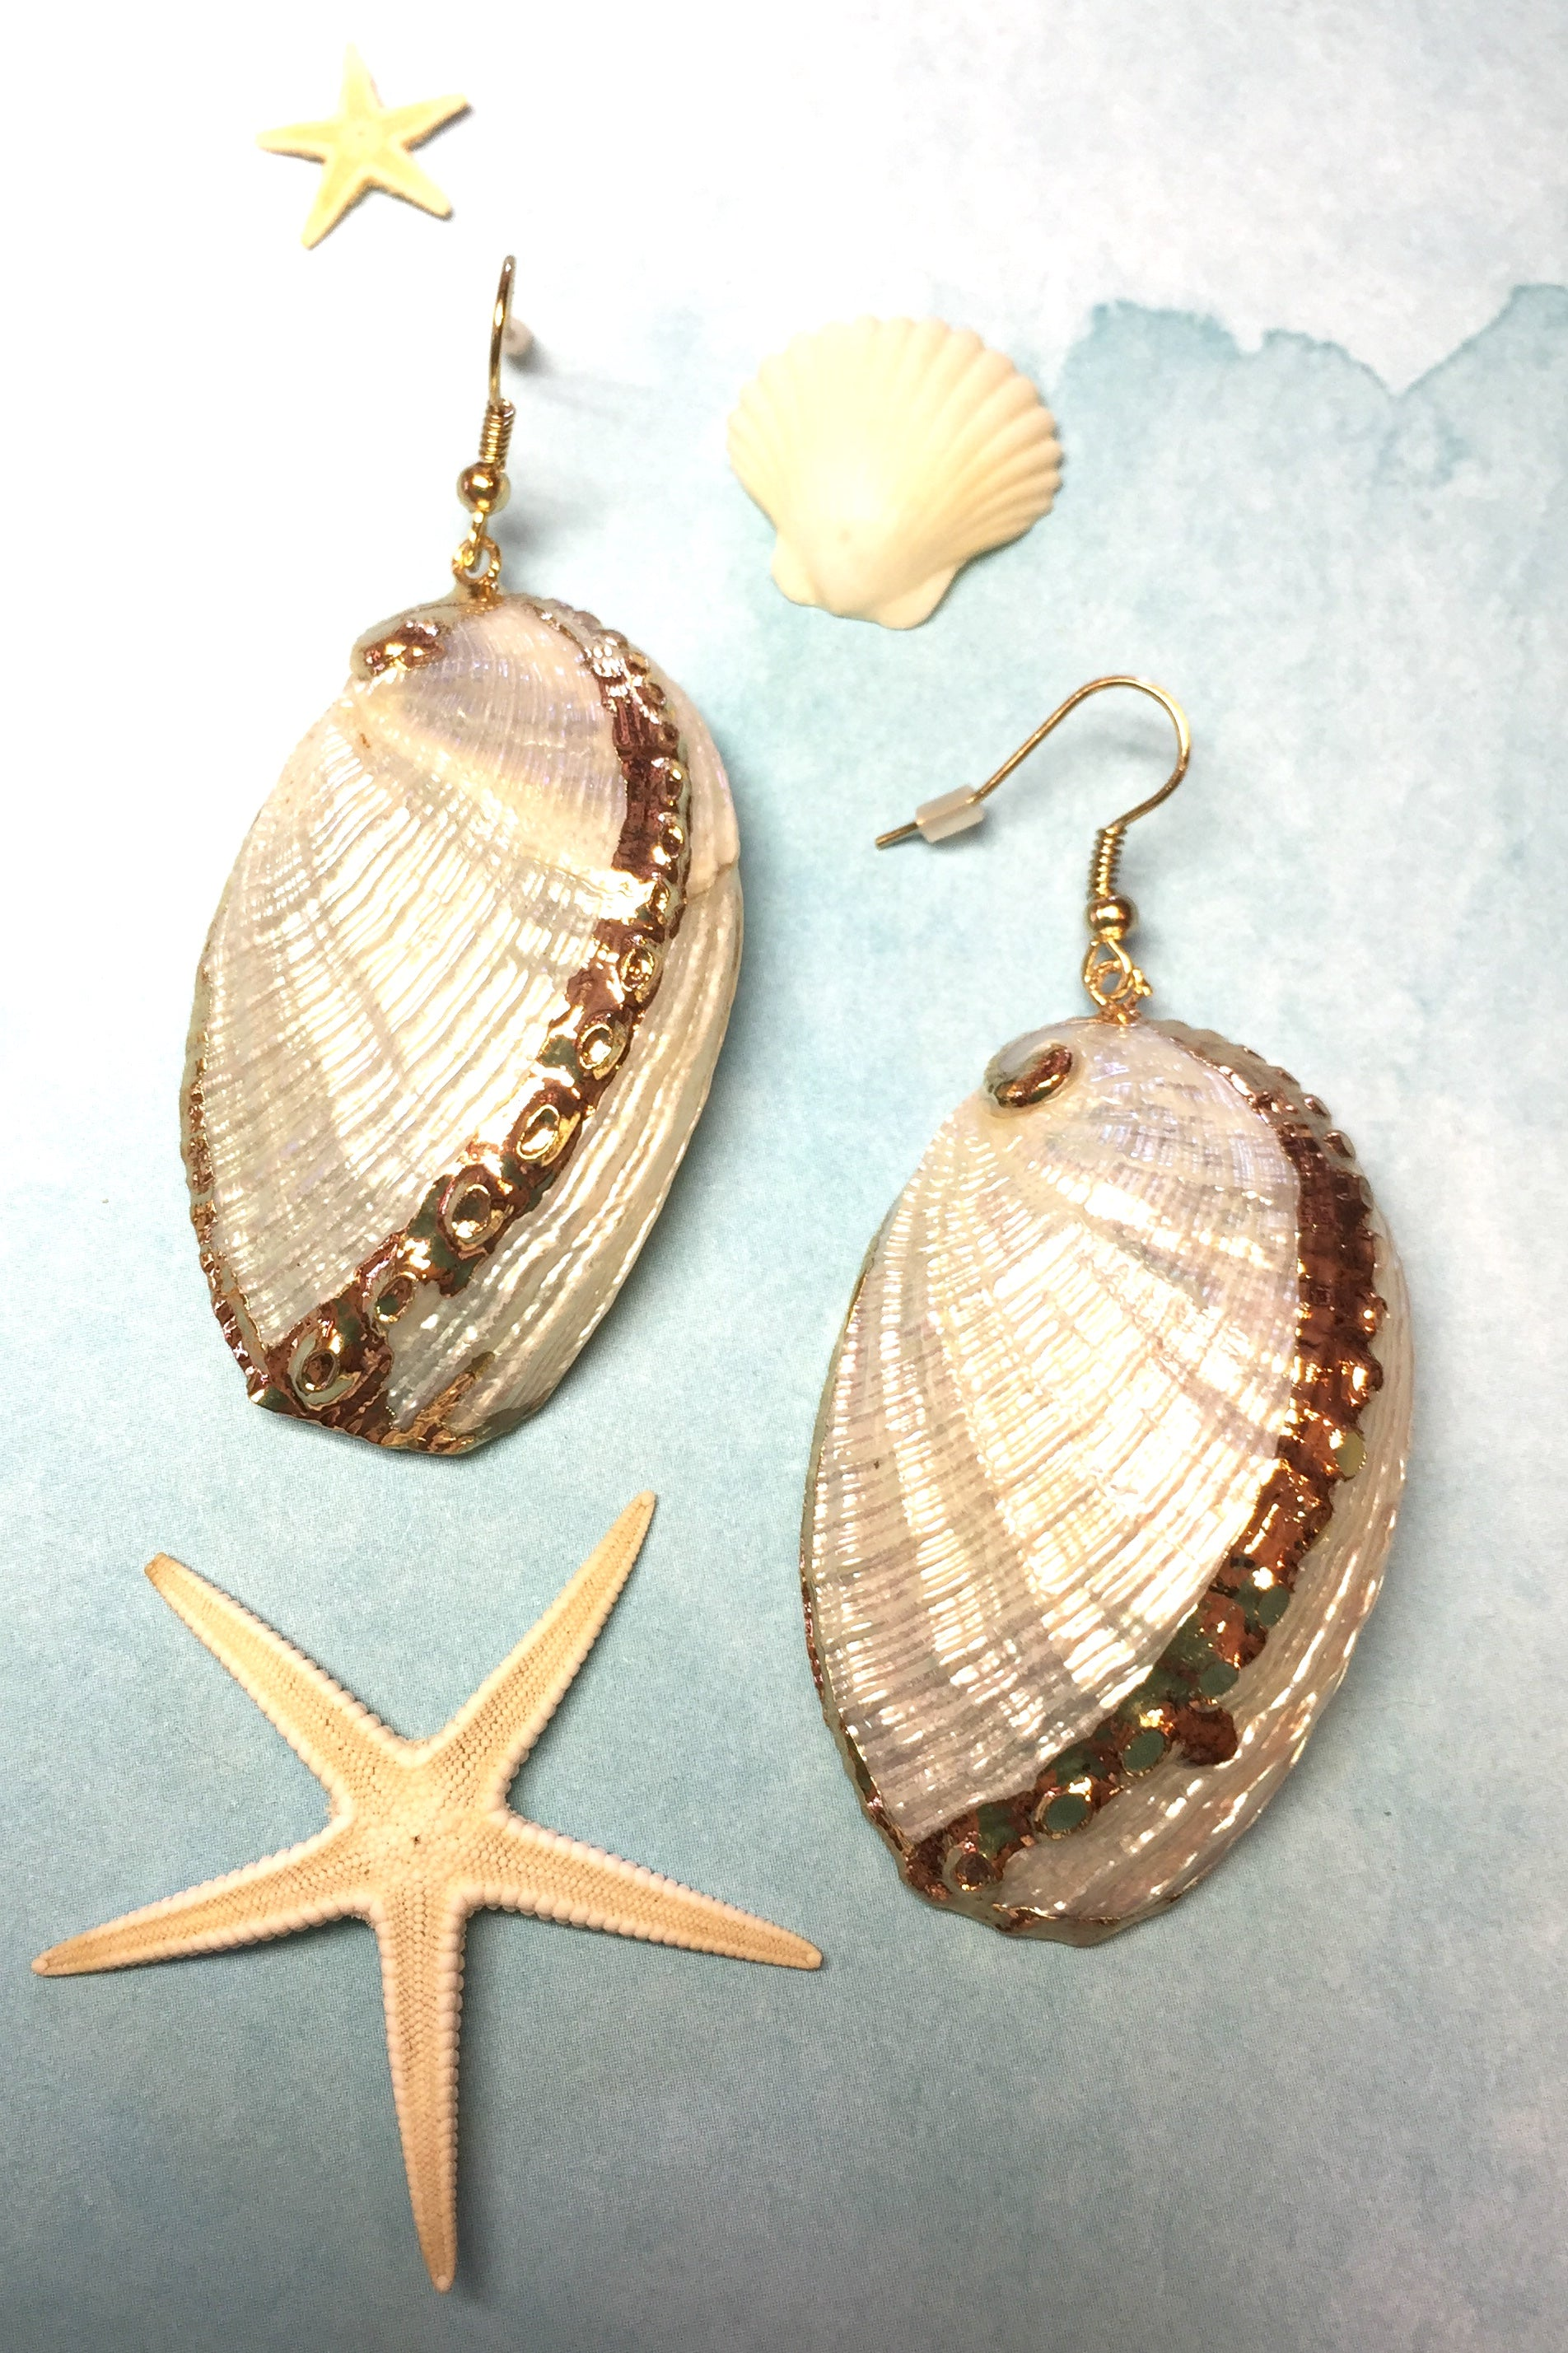 Earrings Golden Wing Shell, seashell earrings with gold edge, beach jewellery